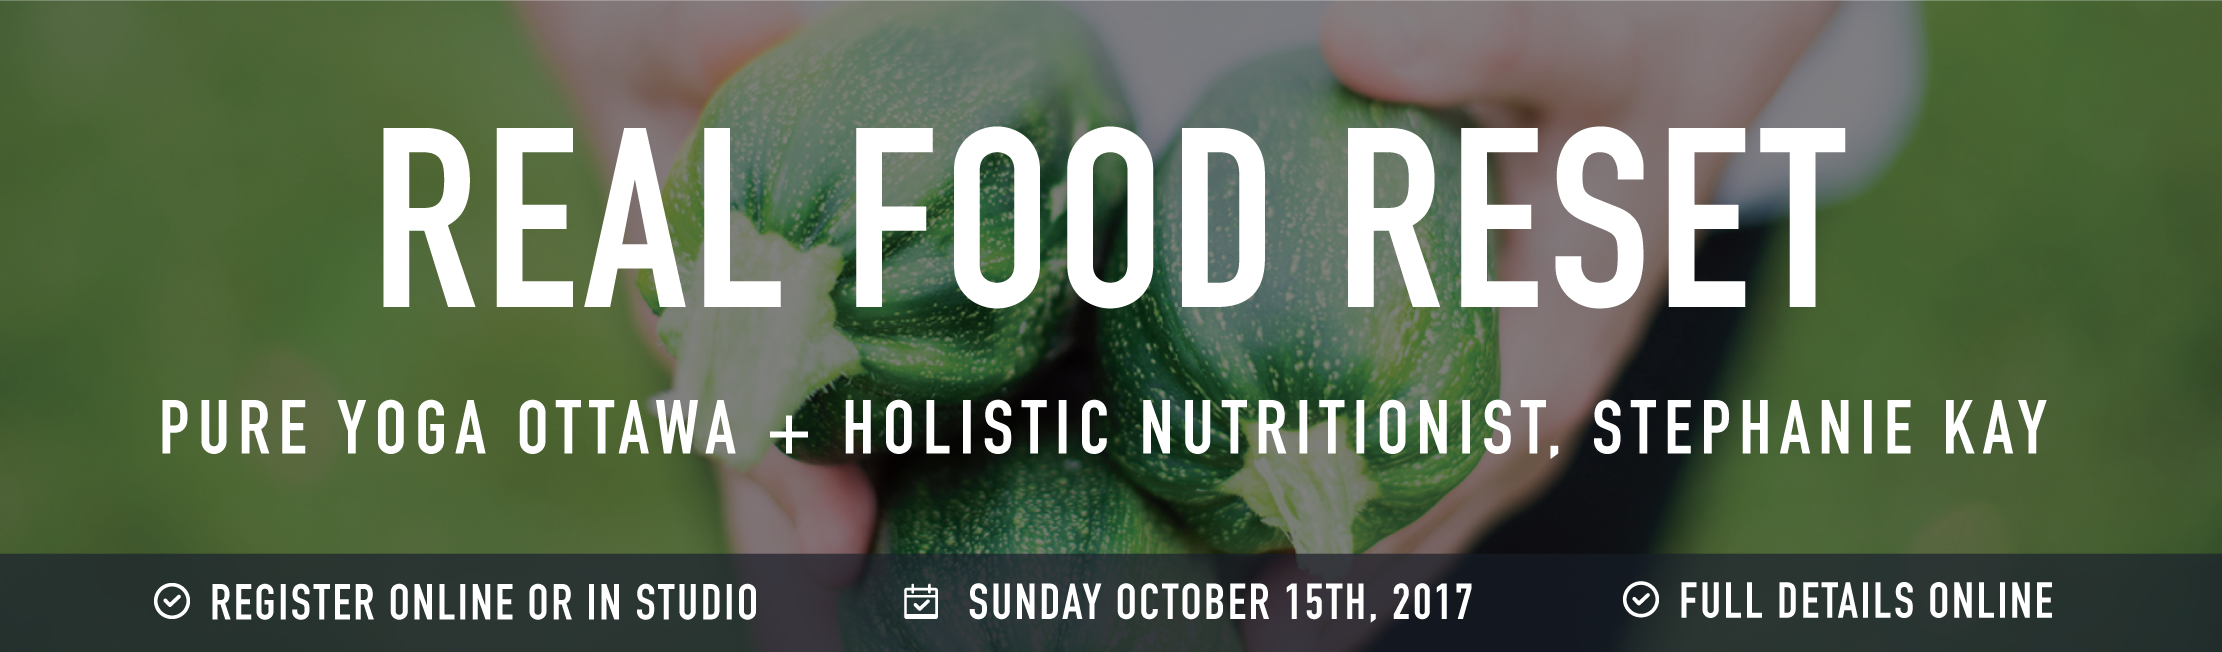 Real food reset banner